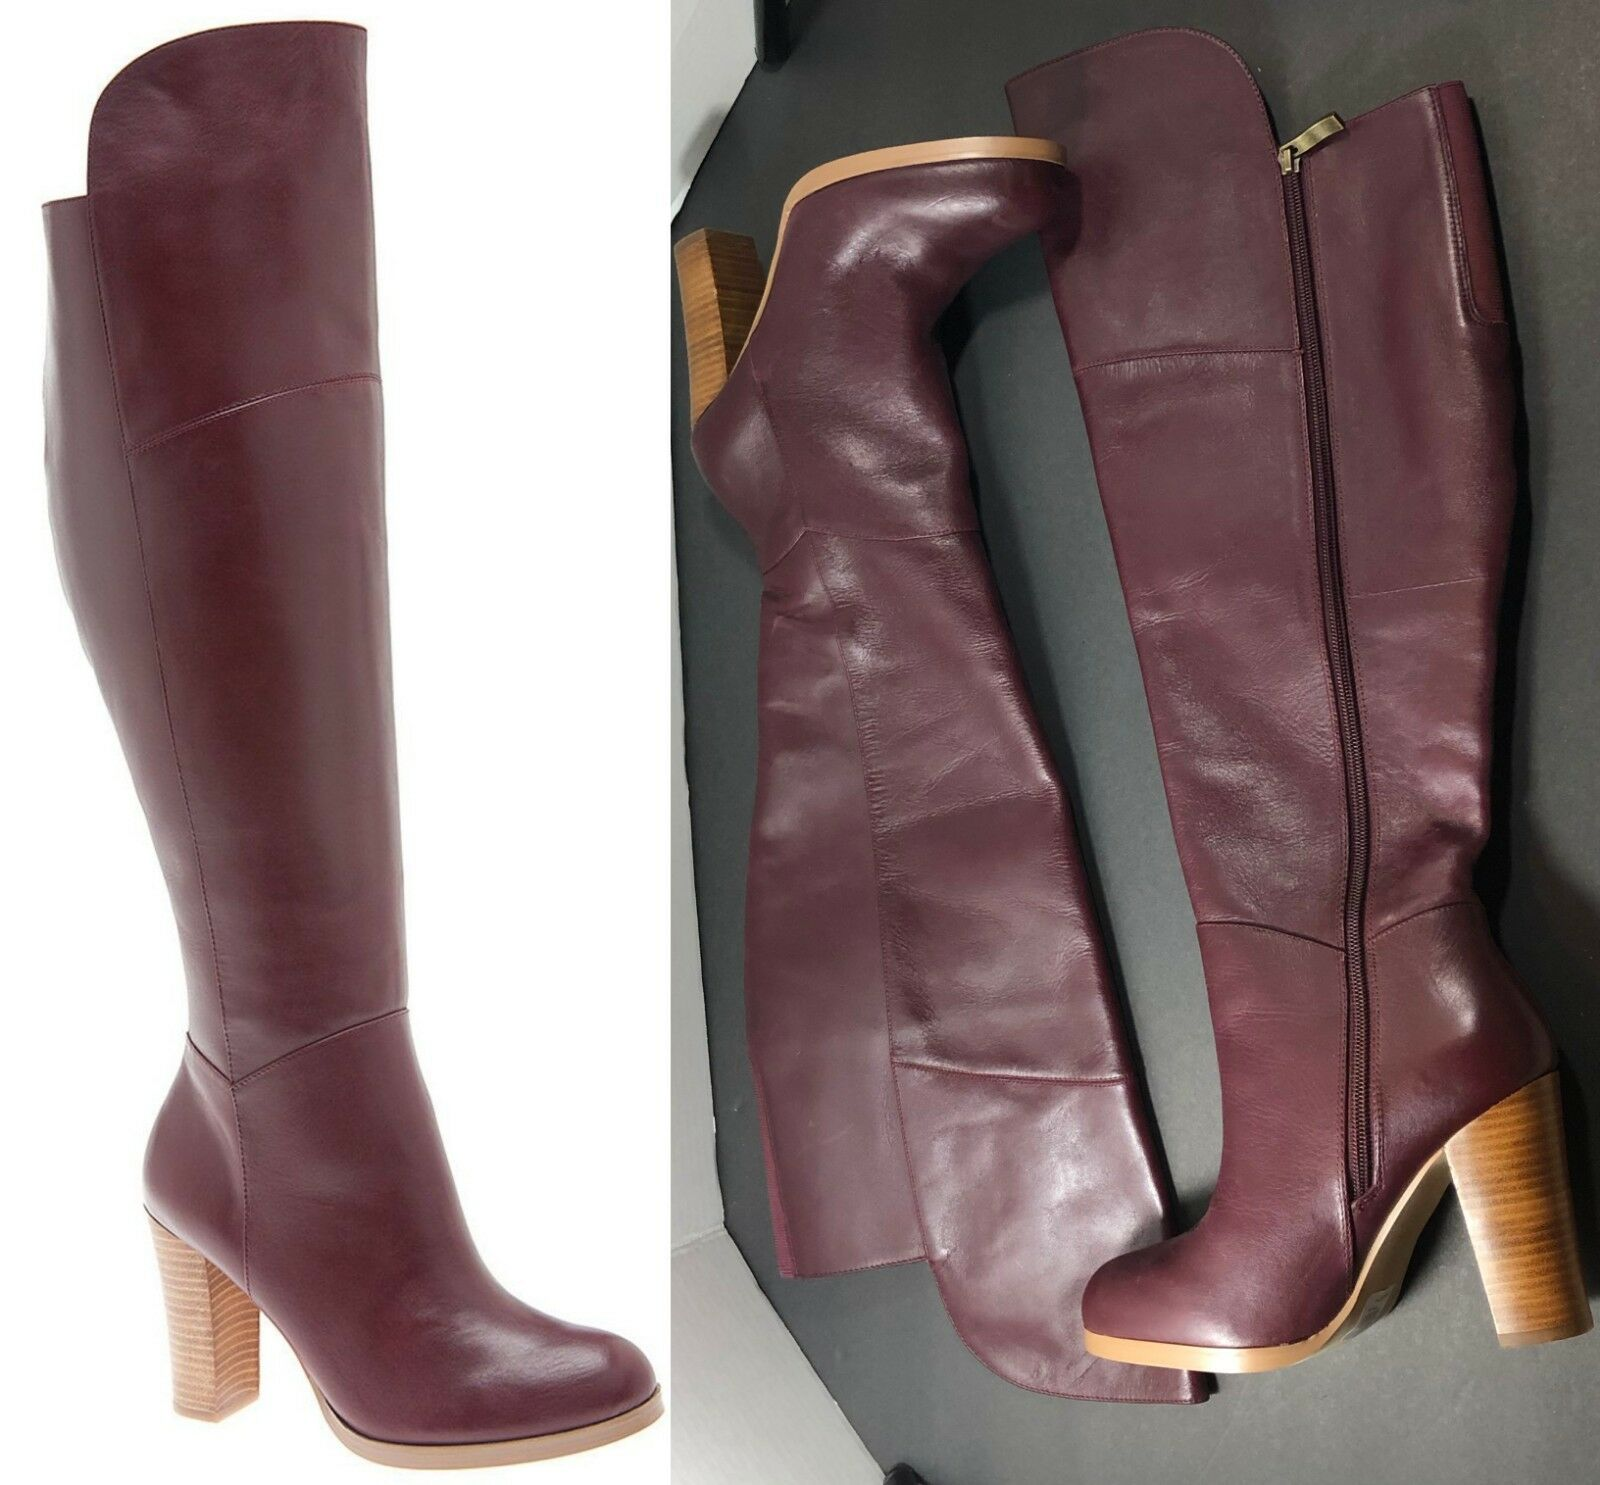 269 Lane Bryant Luciana Over the Knee Leather Boots Size 7 Wide Leather 7W